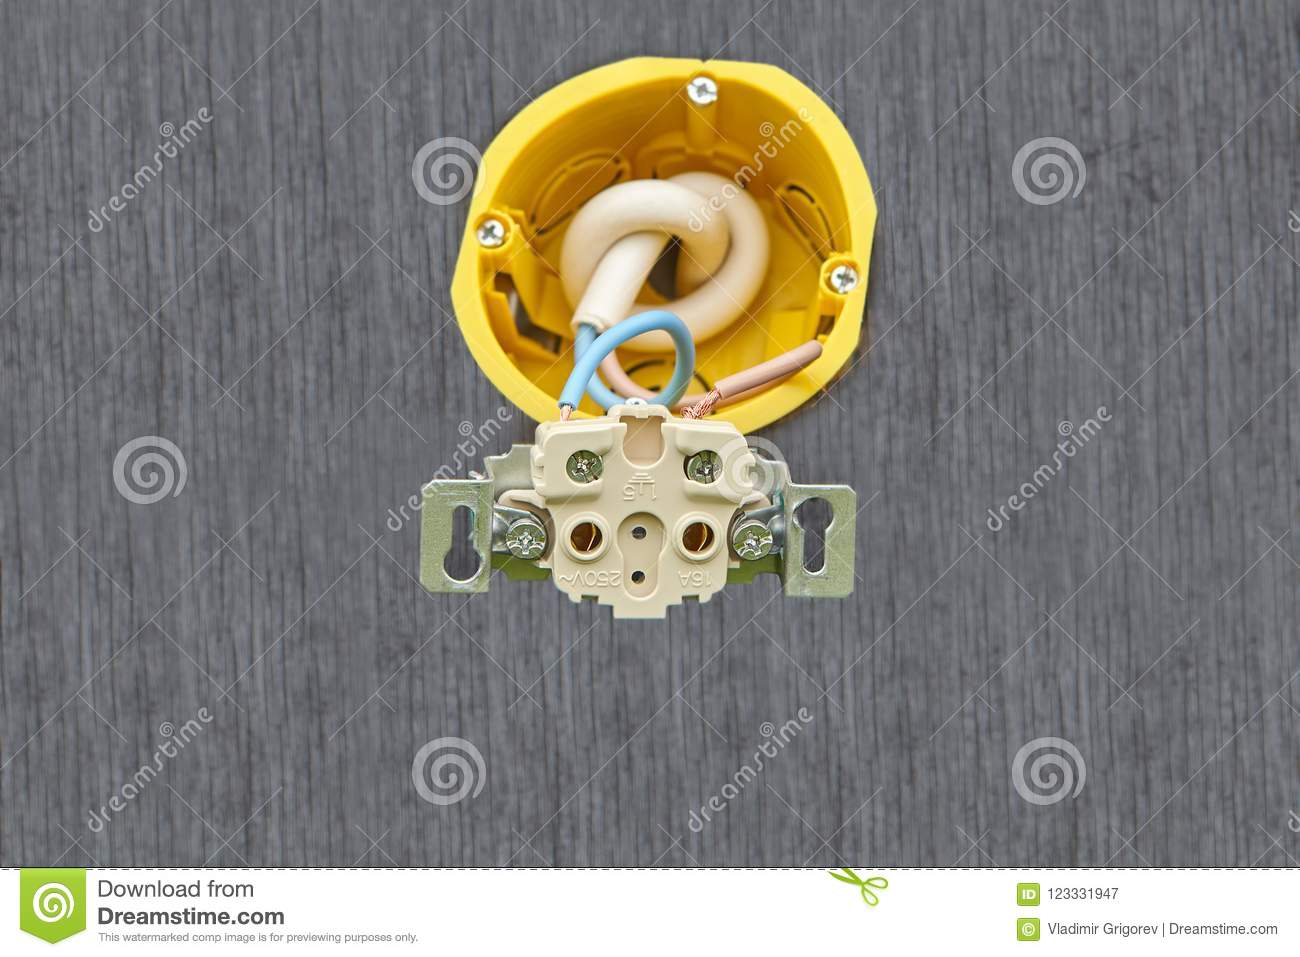 Wall Outlet Household Power With No Upper Cap. Stock Image - Image ...